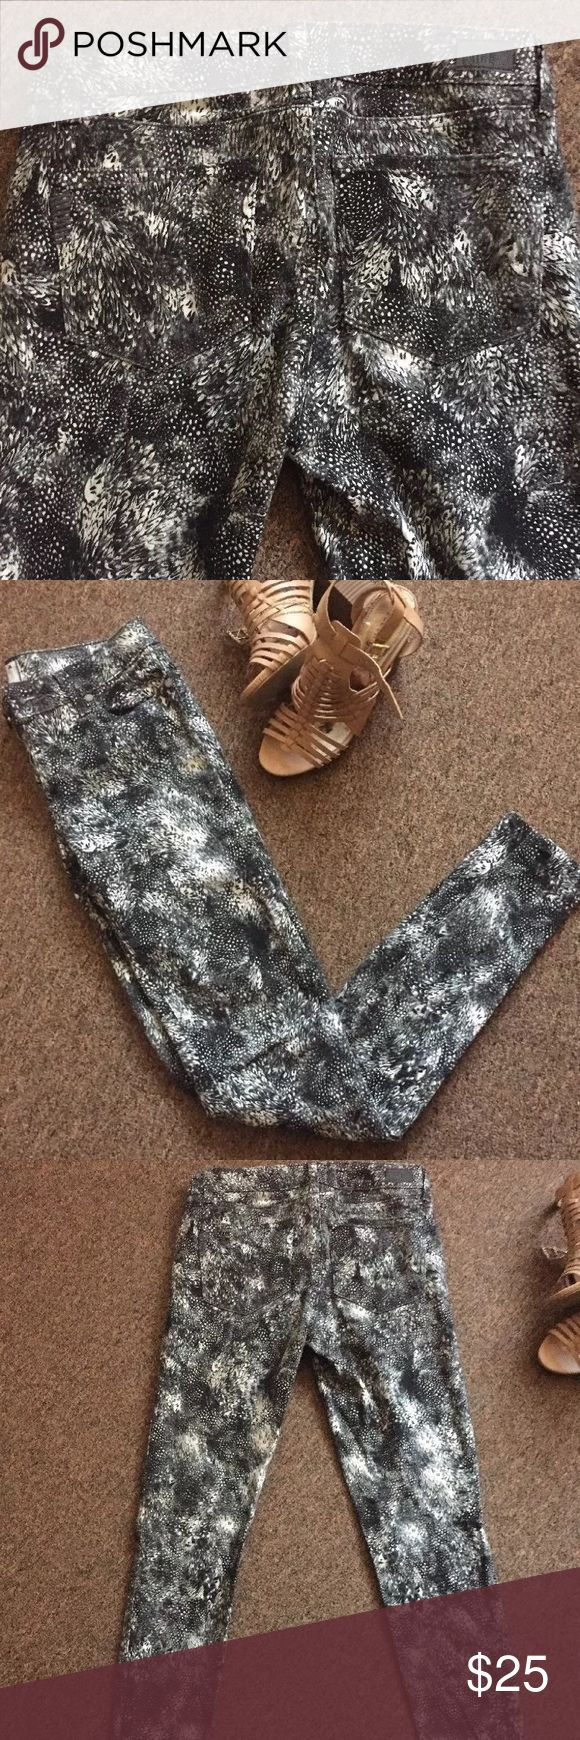 """Paige jeans verdugo ultra skinny feather print Paige jeans in excellent condition, no flaws. Waist 14"""", rise 8"""", inseam 29"""". Paige Jeans Jeans Skinny"""